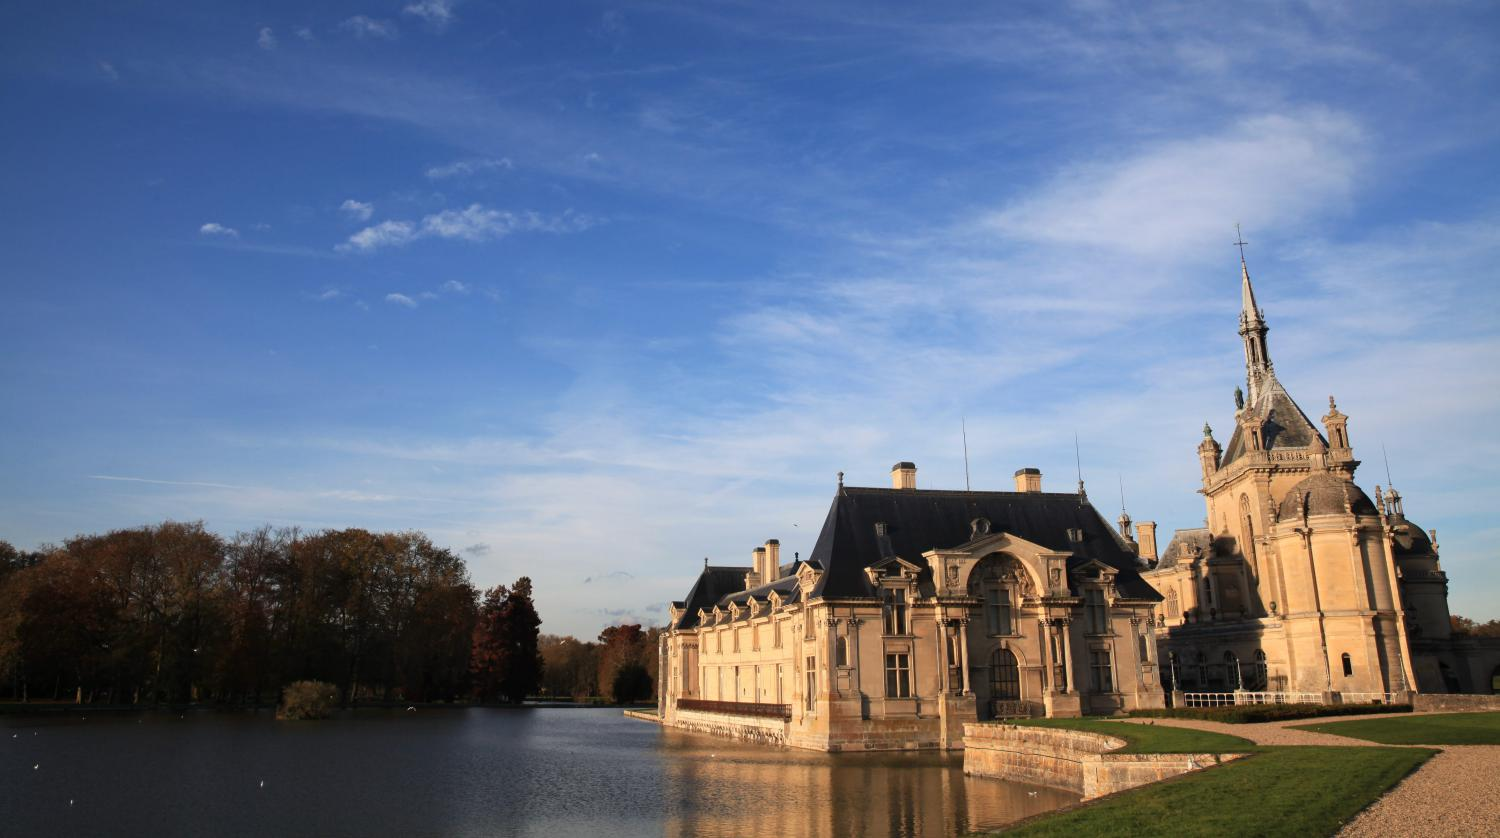 Feuilleton chantilly le ch teau des princes 1 5 - Chateau de chantilly adresse ...